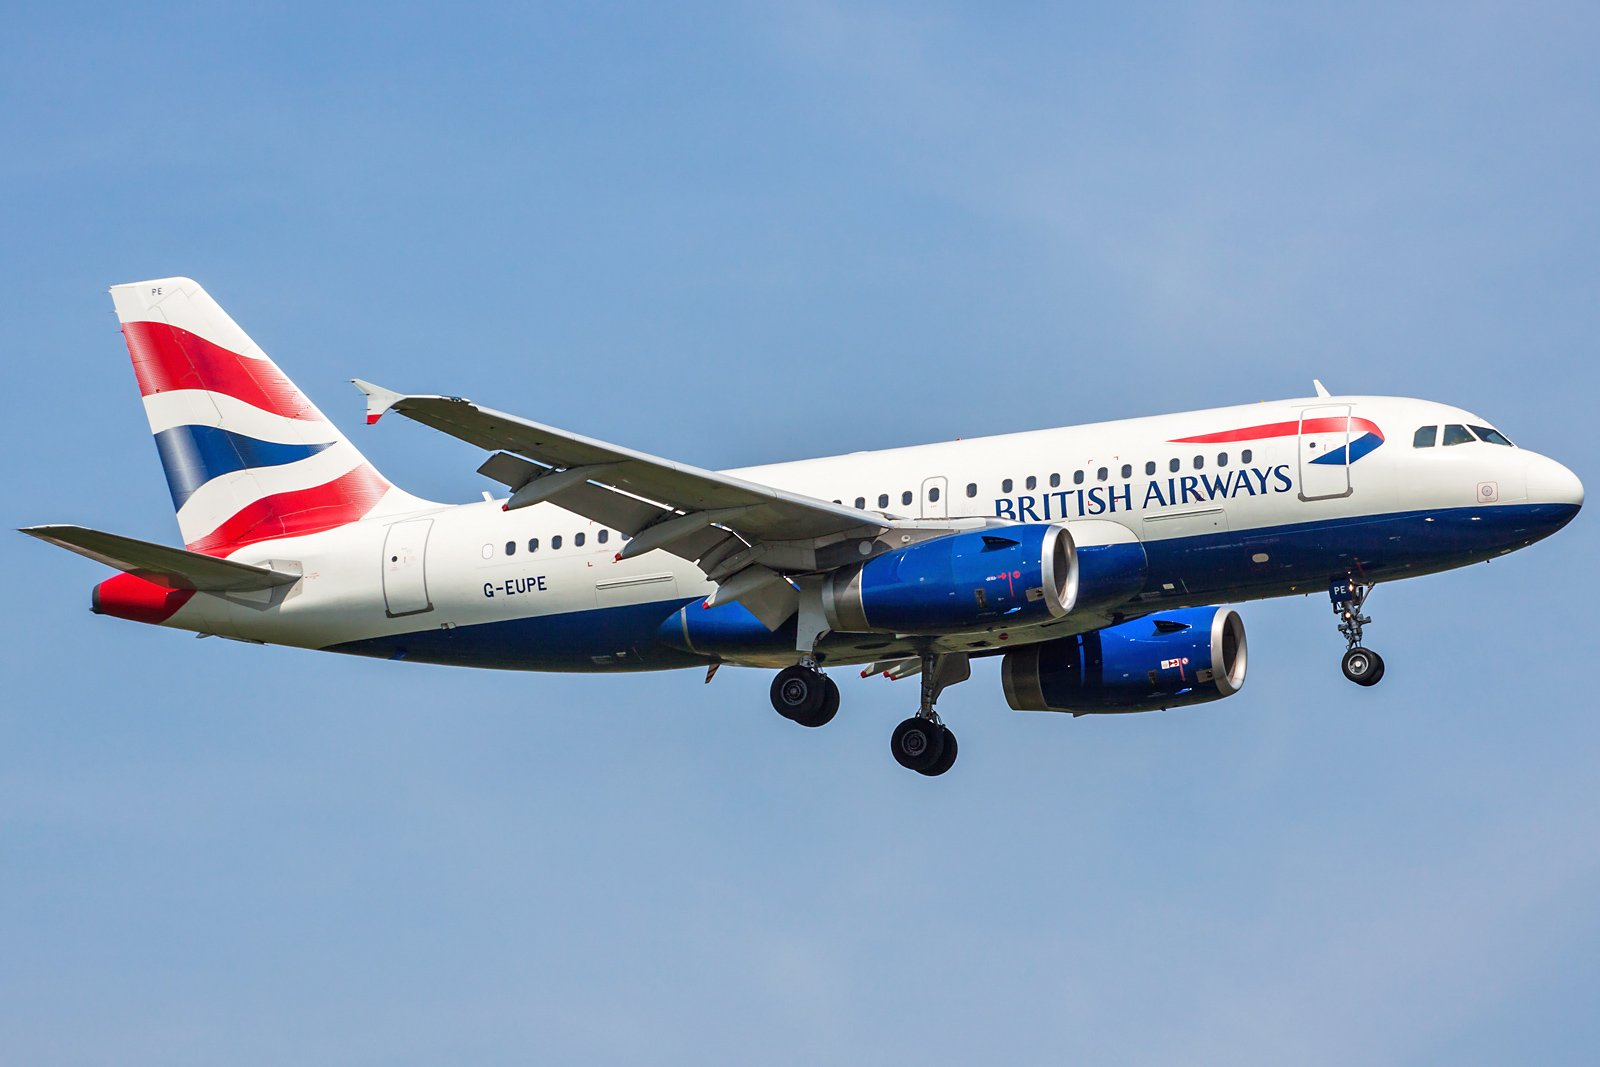 British Airways Airbus A319-131 G-EUPE